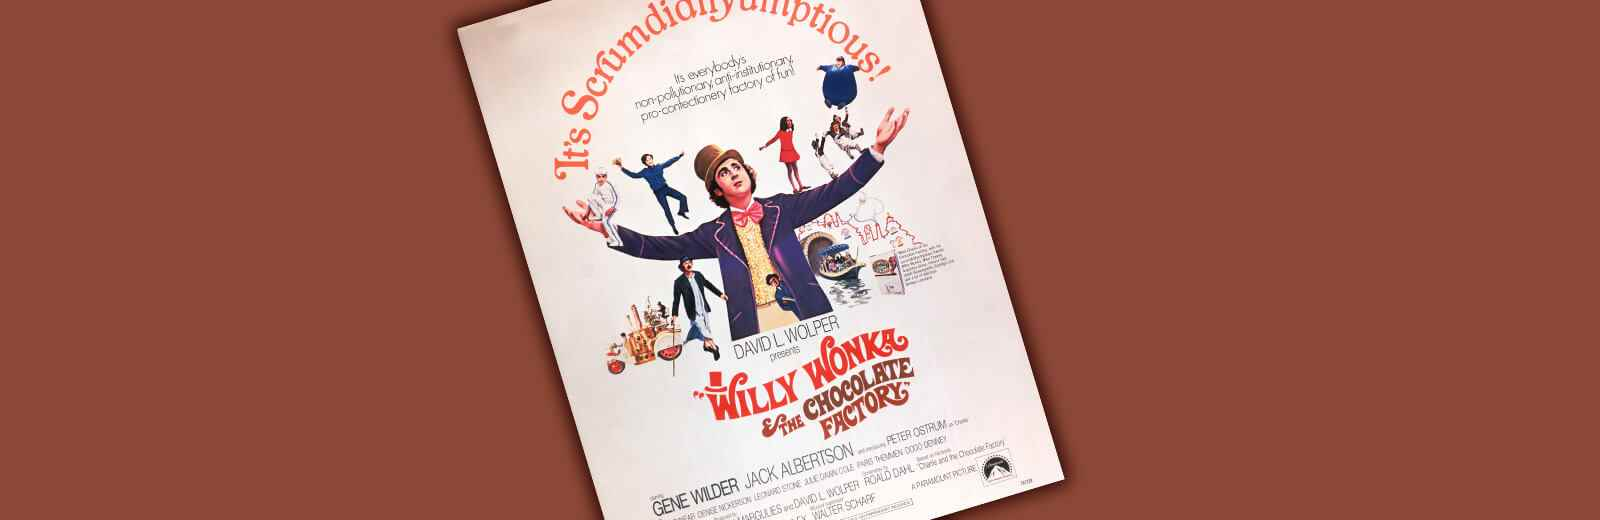 Willy Wonka and the Chocolate Factory (U)